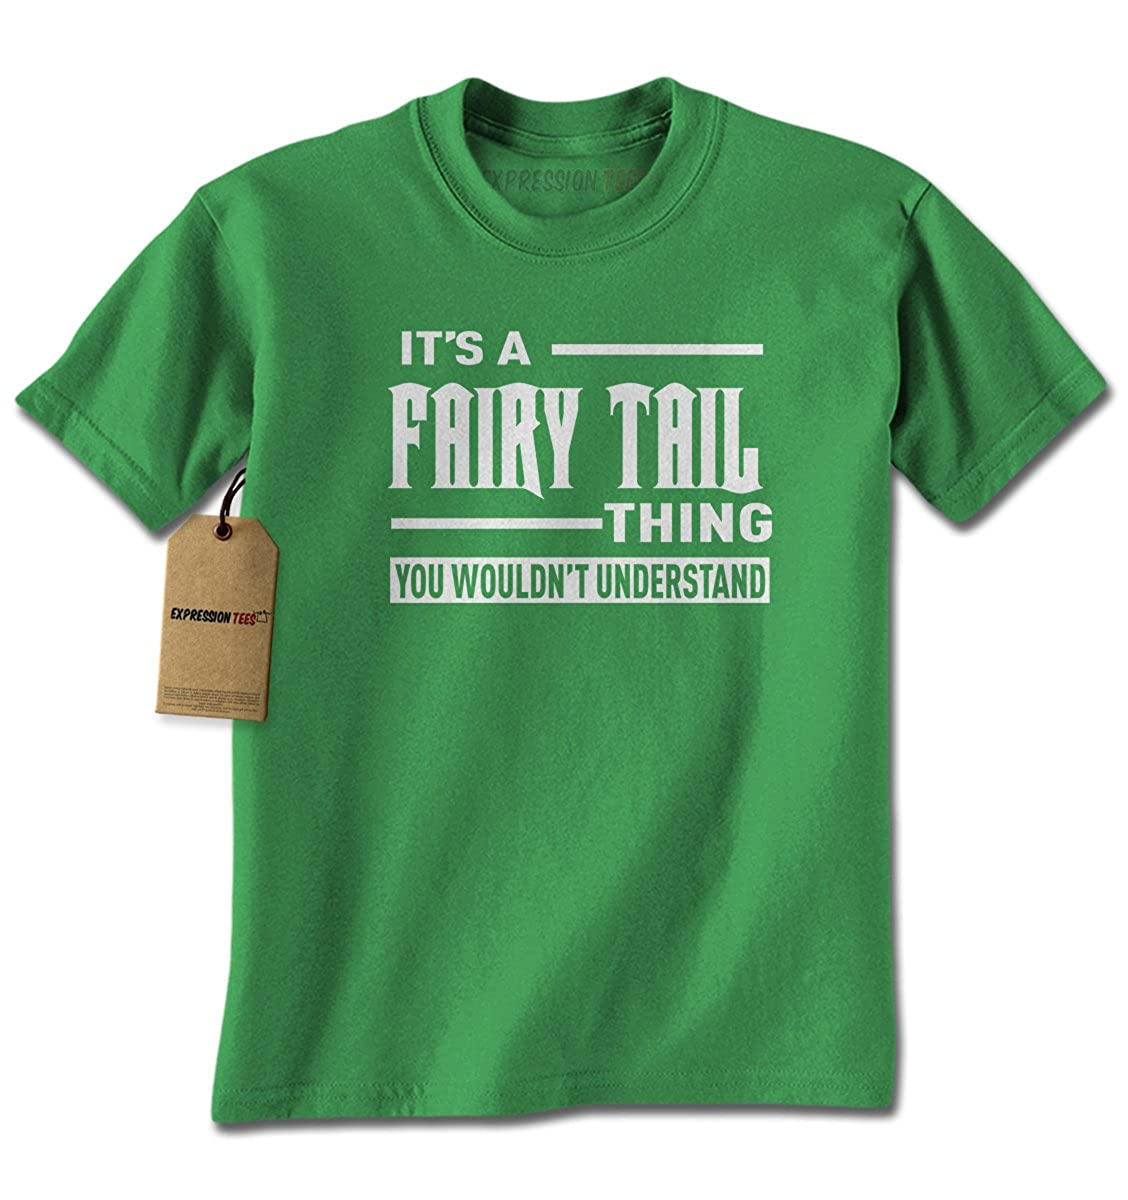 Expression Tees It's A Fairy Tail Thing Mens T-shirt 1998-M